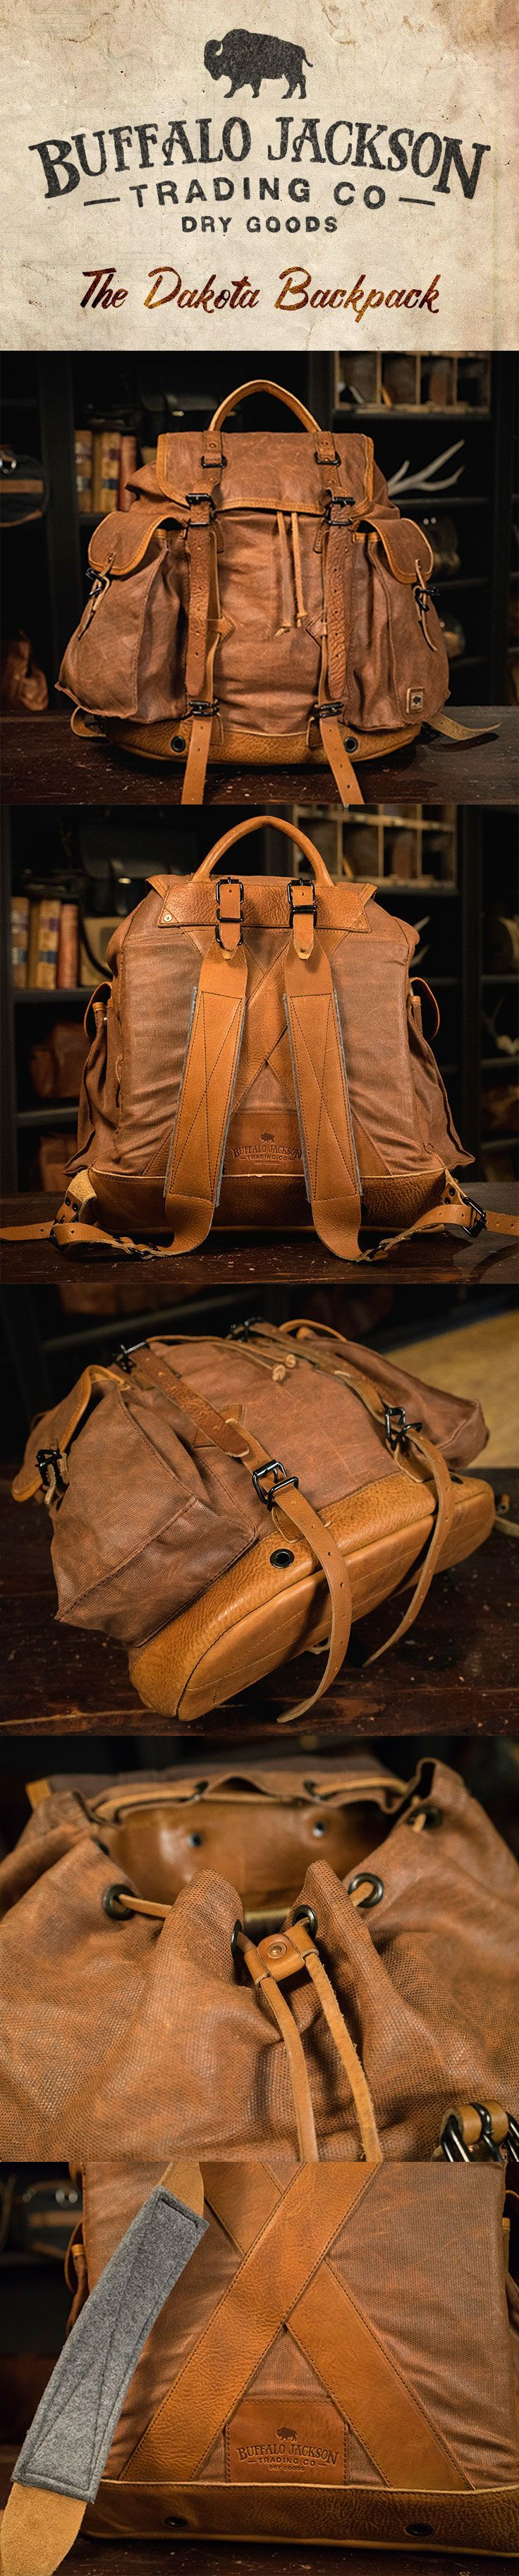 Crafted of waxed canvas and full grain leather with a distressed vintage finish, this men's vintage military rucksack was built to honor the memory of good men and good days. Also available in charcoal (shown here in tan). vintage military backpack | vintage army rucksack